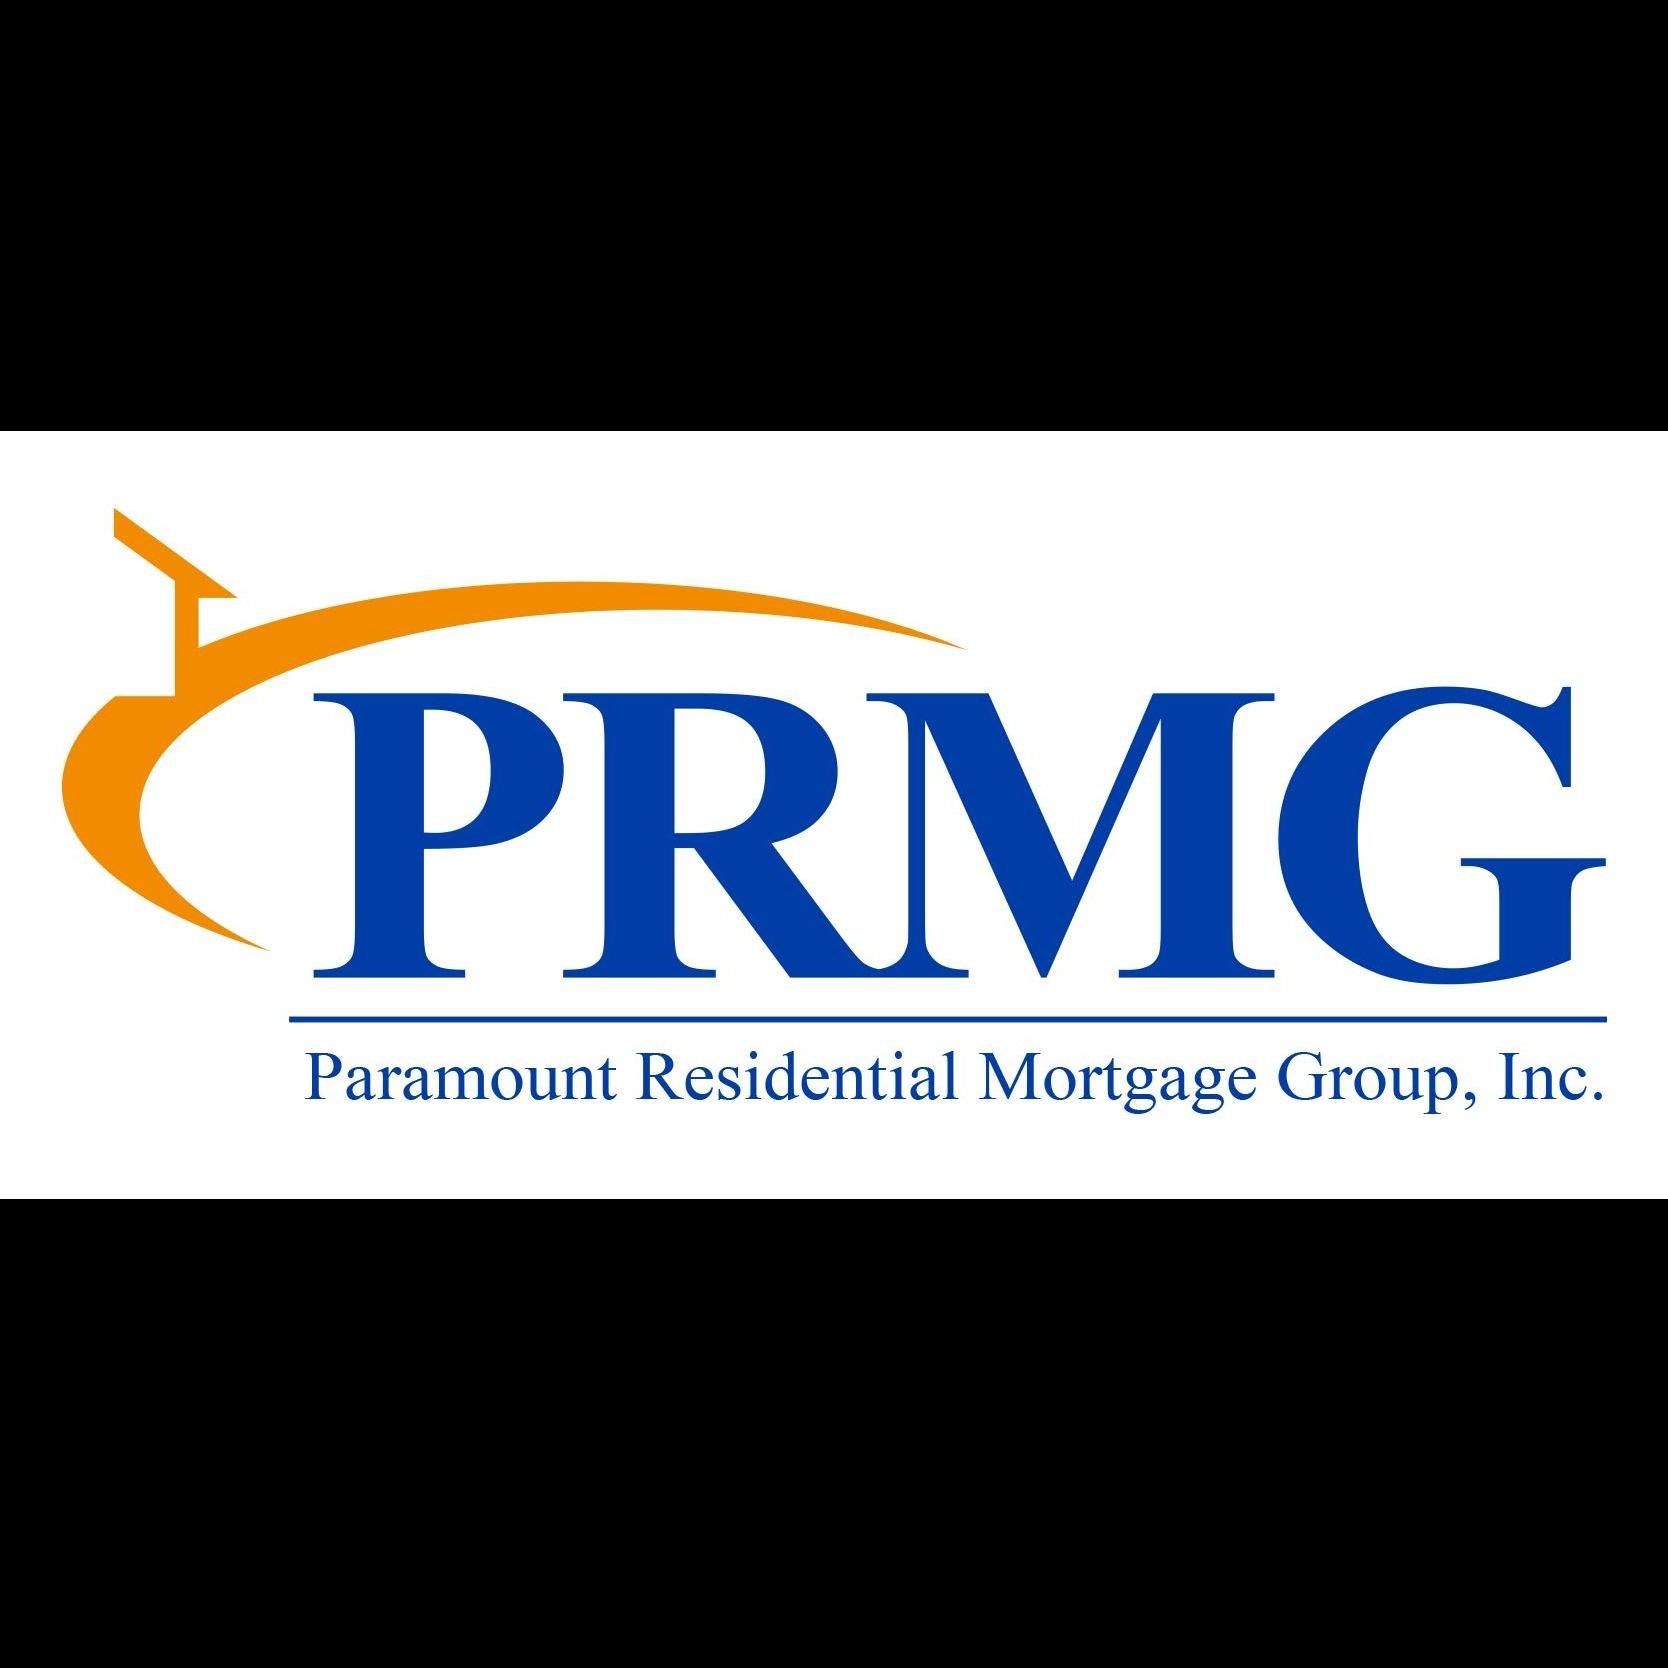 Andreas Petrou | Paramount Residential Mortgage Group, Inc.